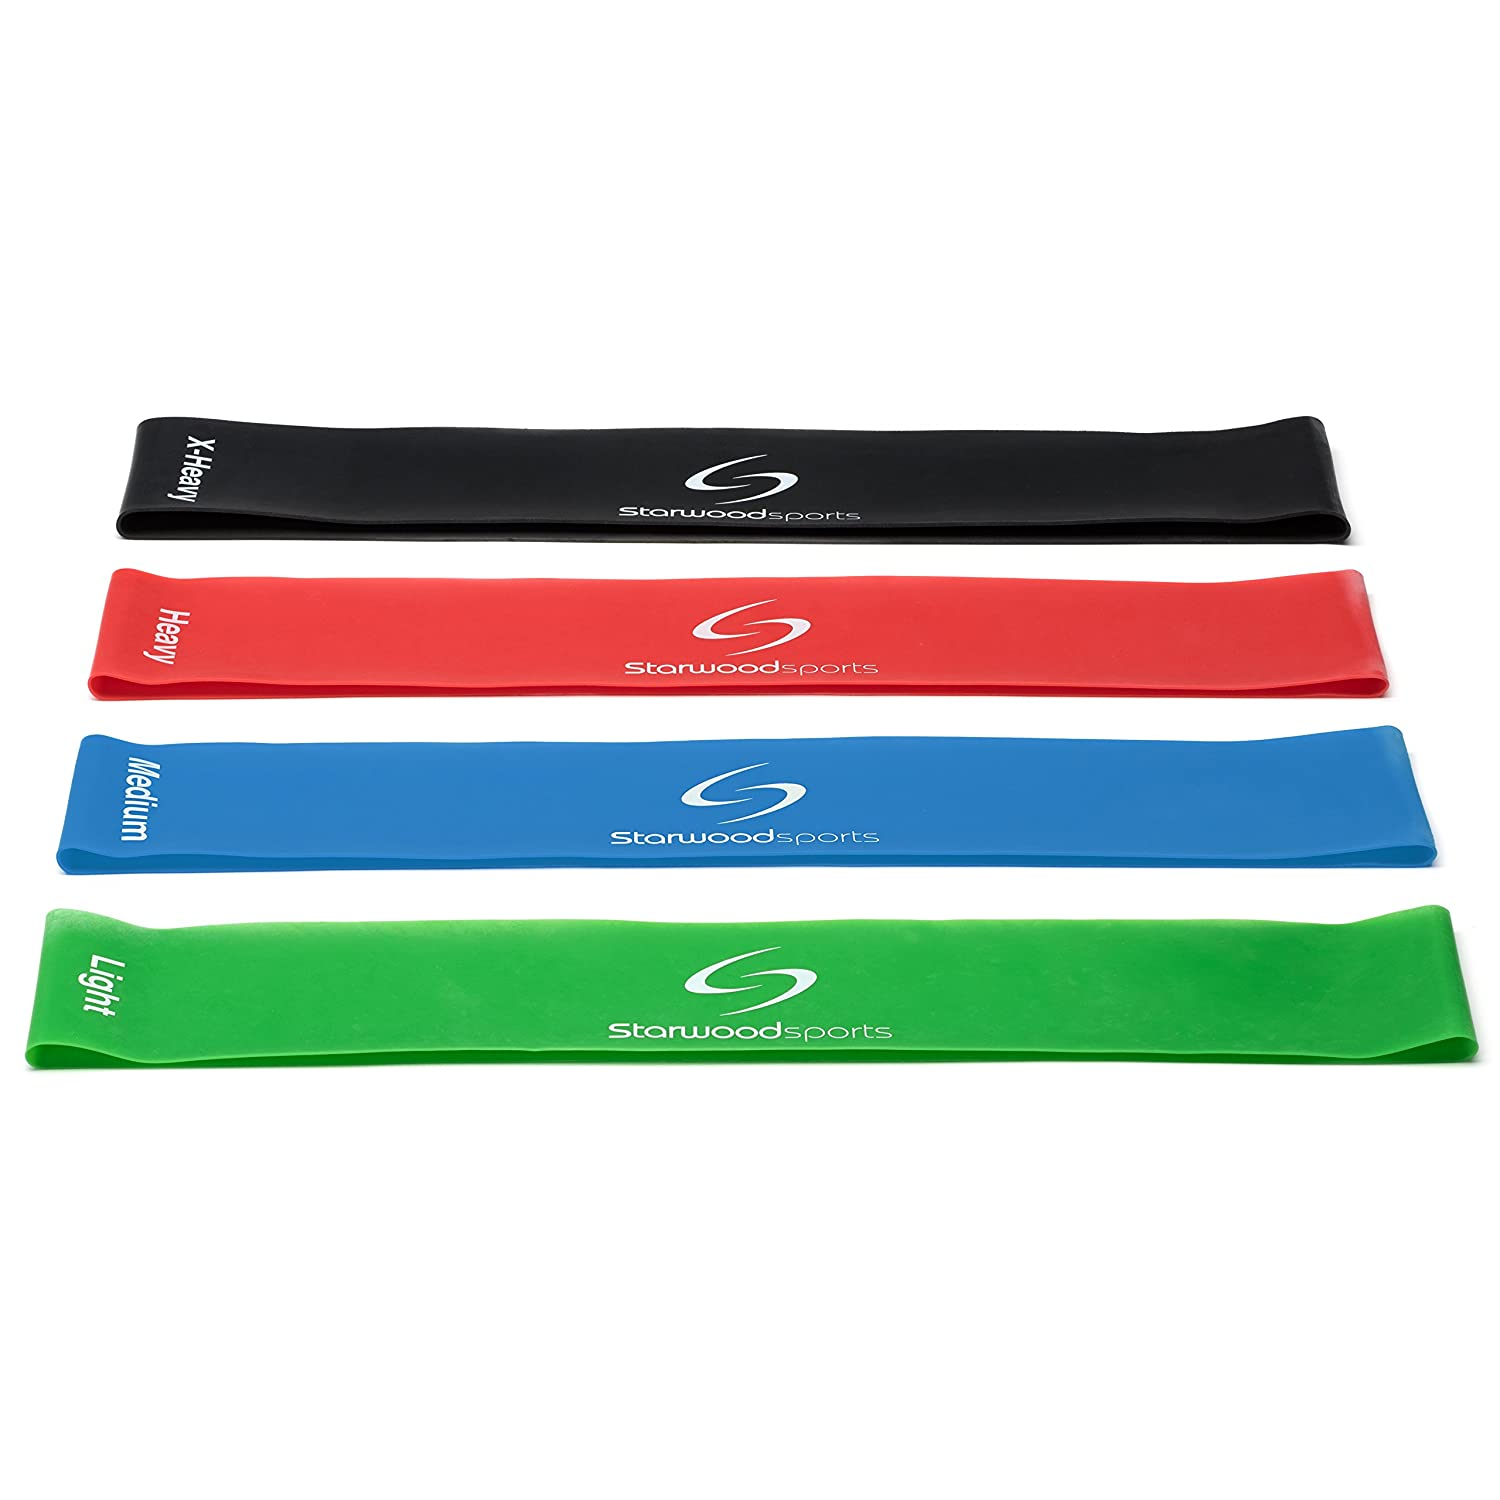 Gen x labs sports amp fitness performance kit 11 week program 4 - Amazon Com Starwood Sports Exercise Resistance Loop Bands Set Of 4 Sports Outdoors